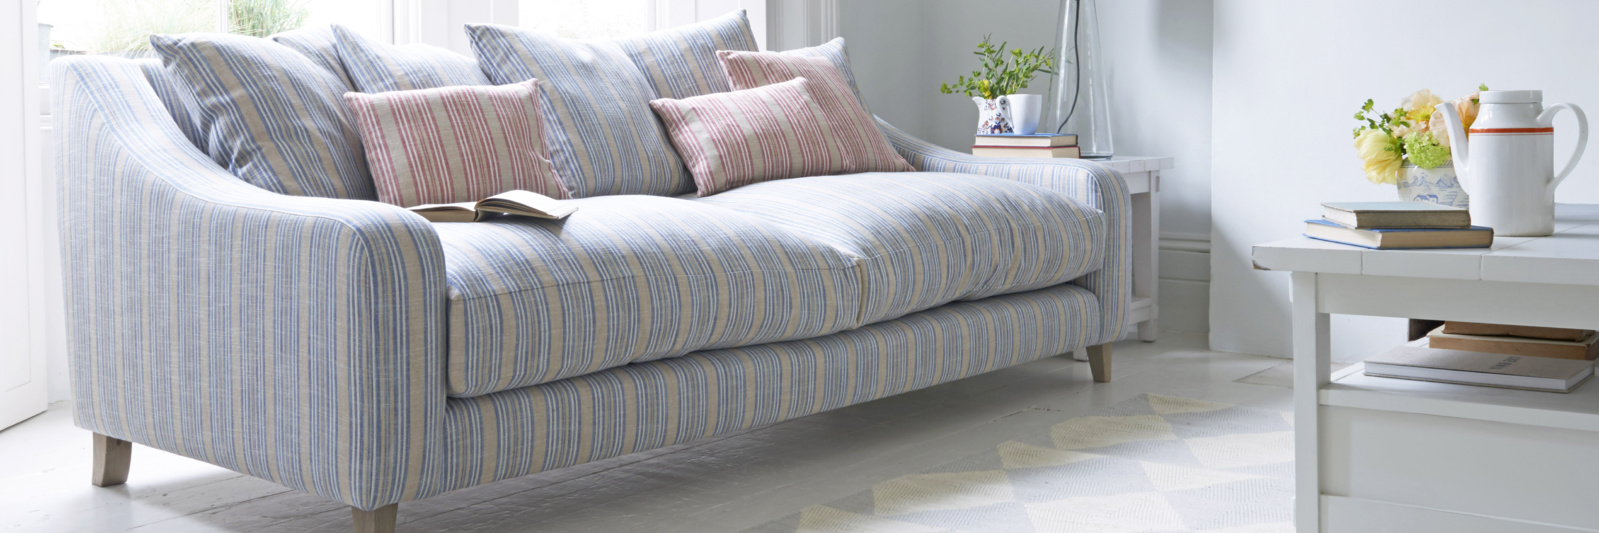 Striped Sofas | Comfy Fabric Sofas | Loaf